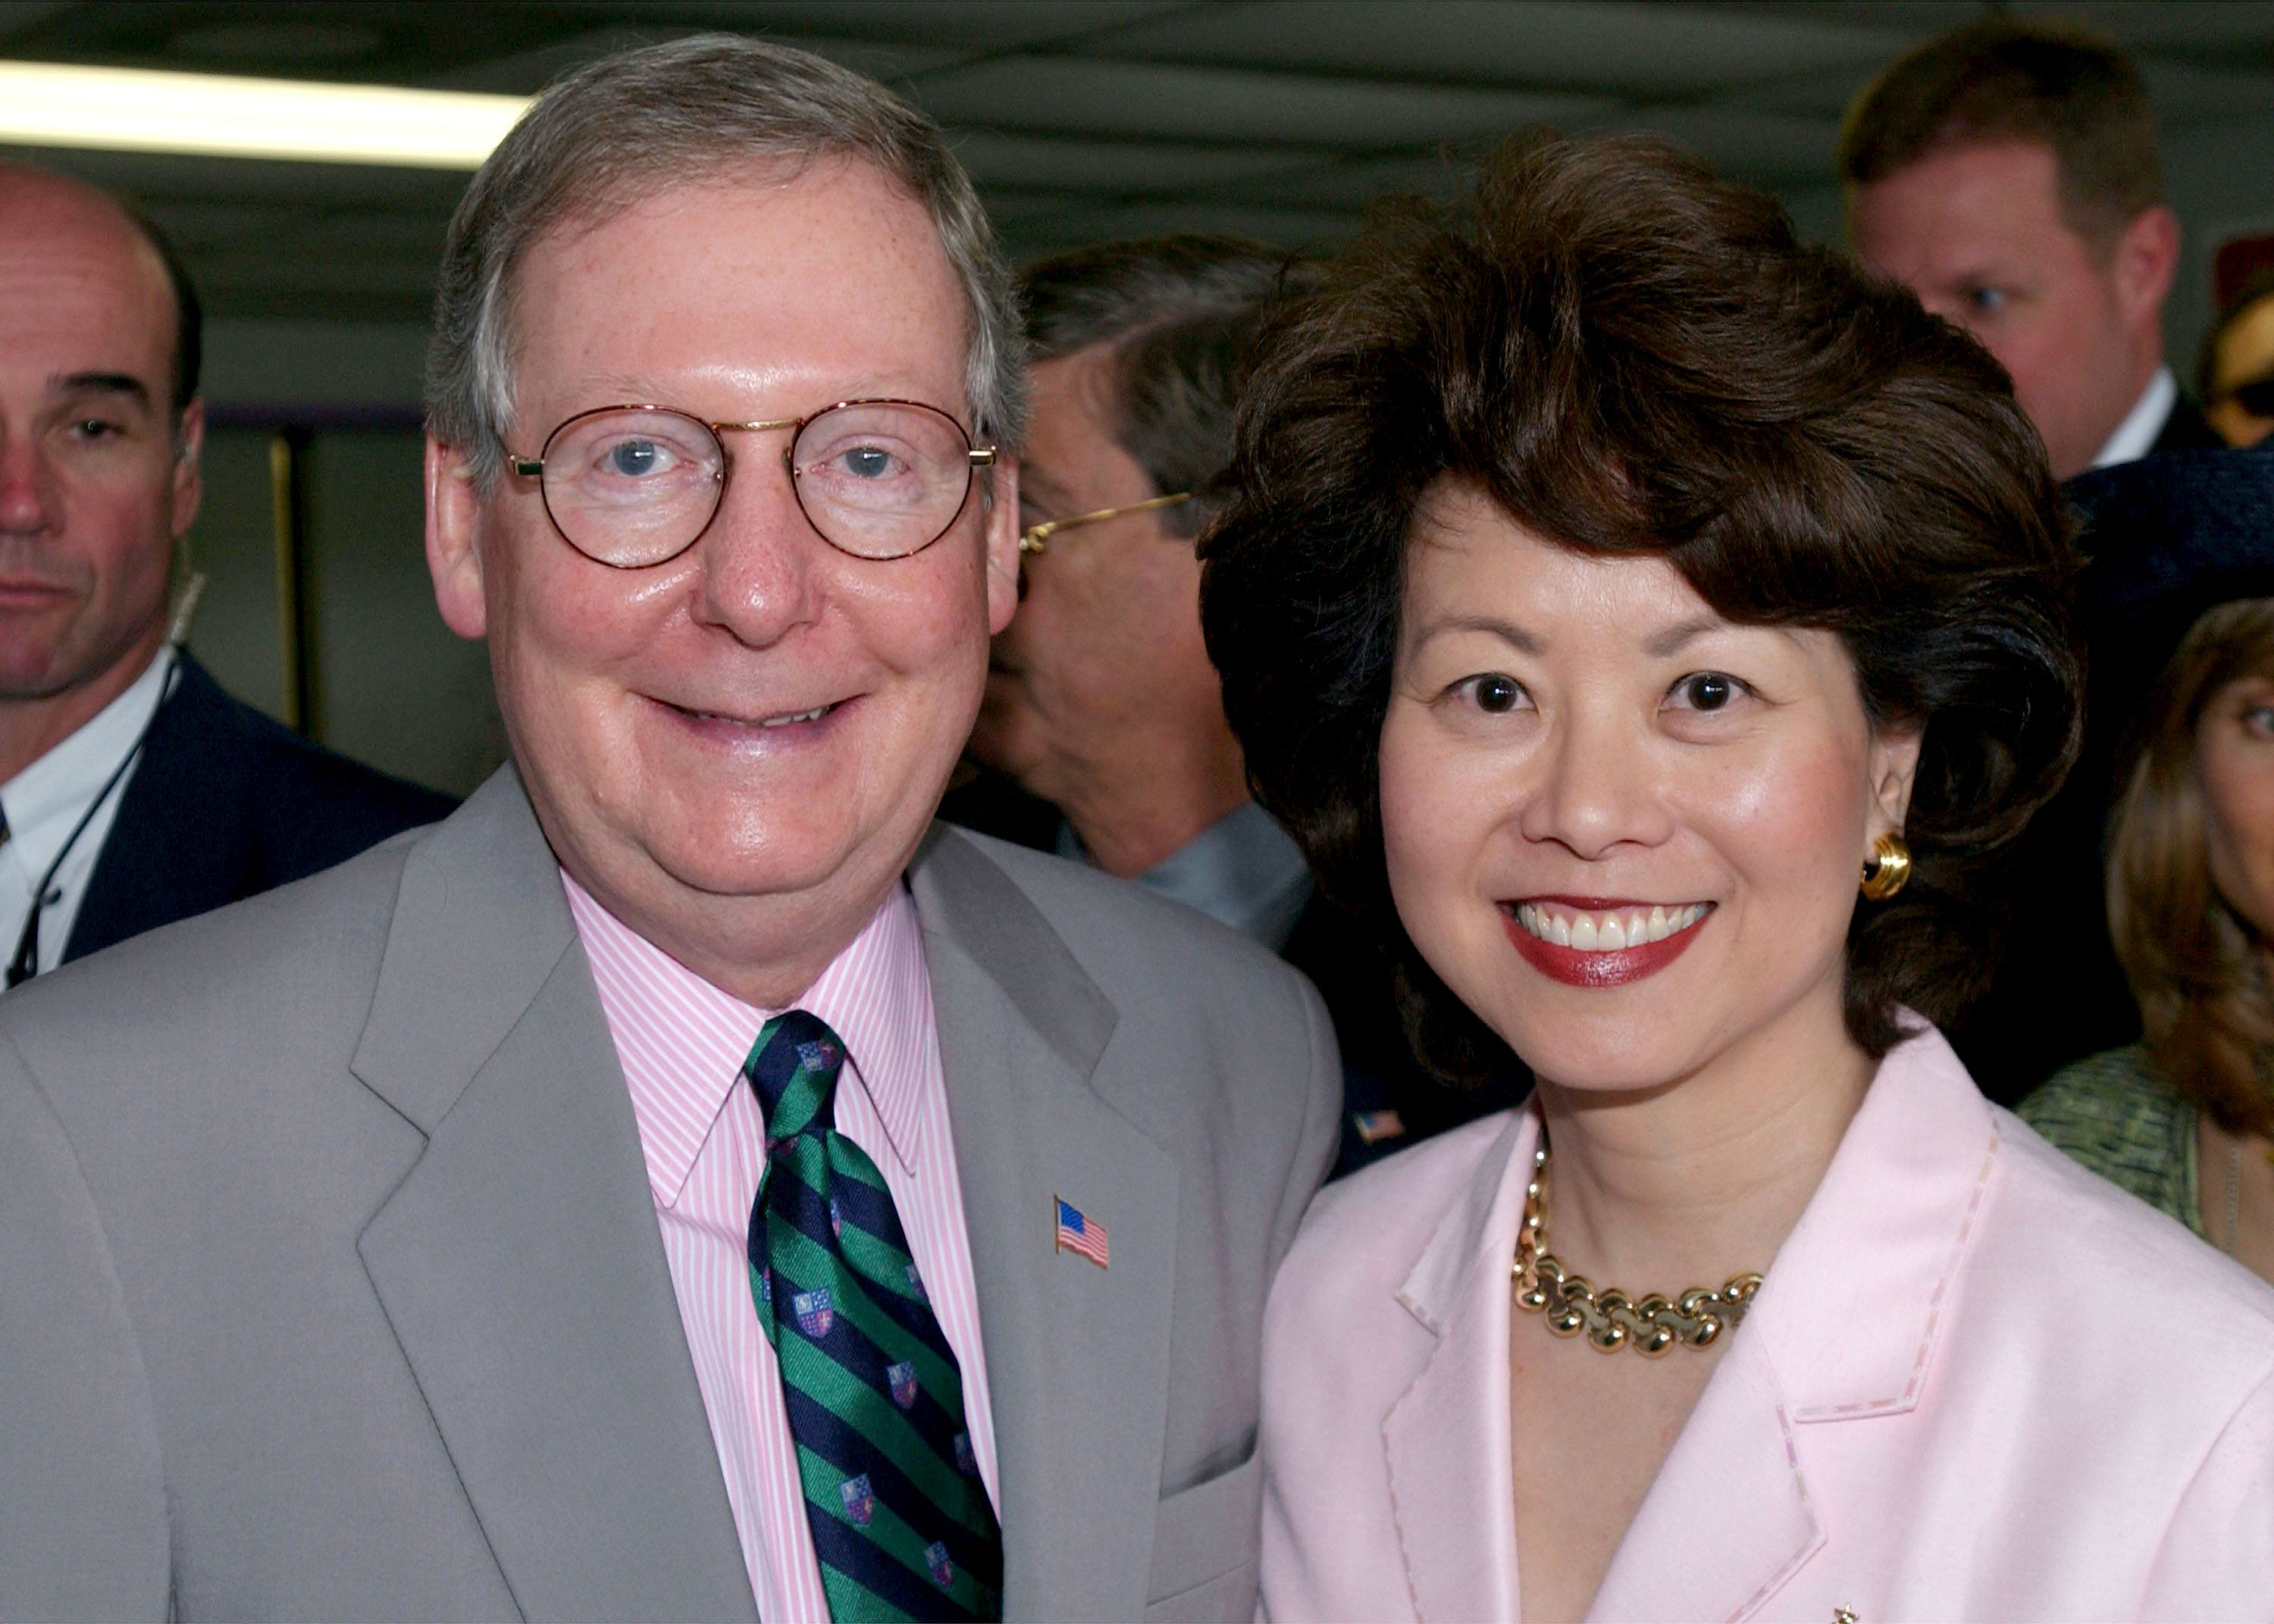 Mitch McConnell and Elaine Chao.